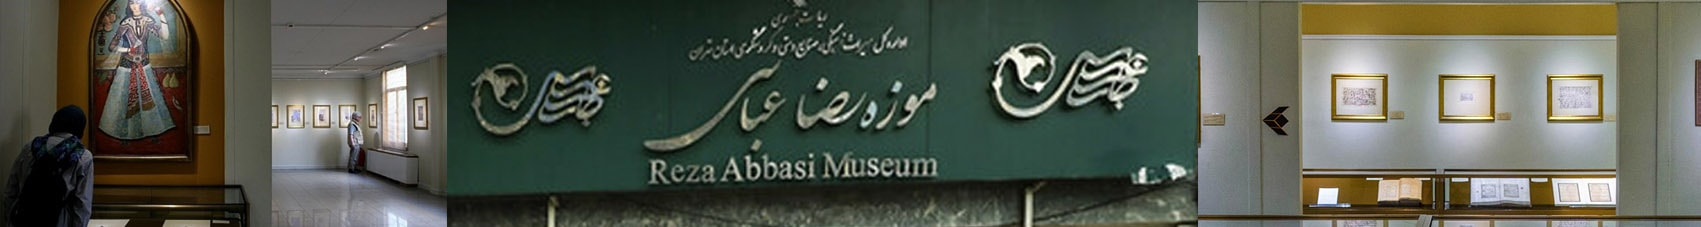 A museumNamed-min